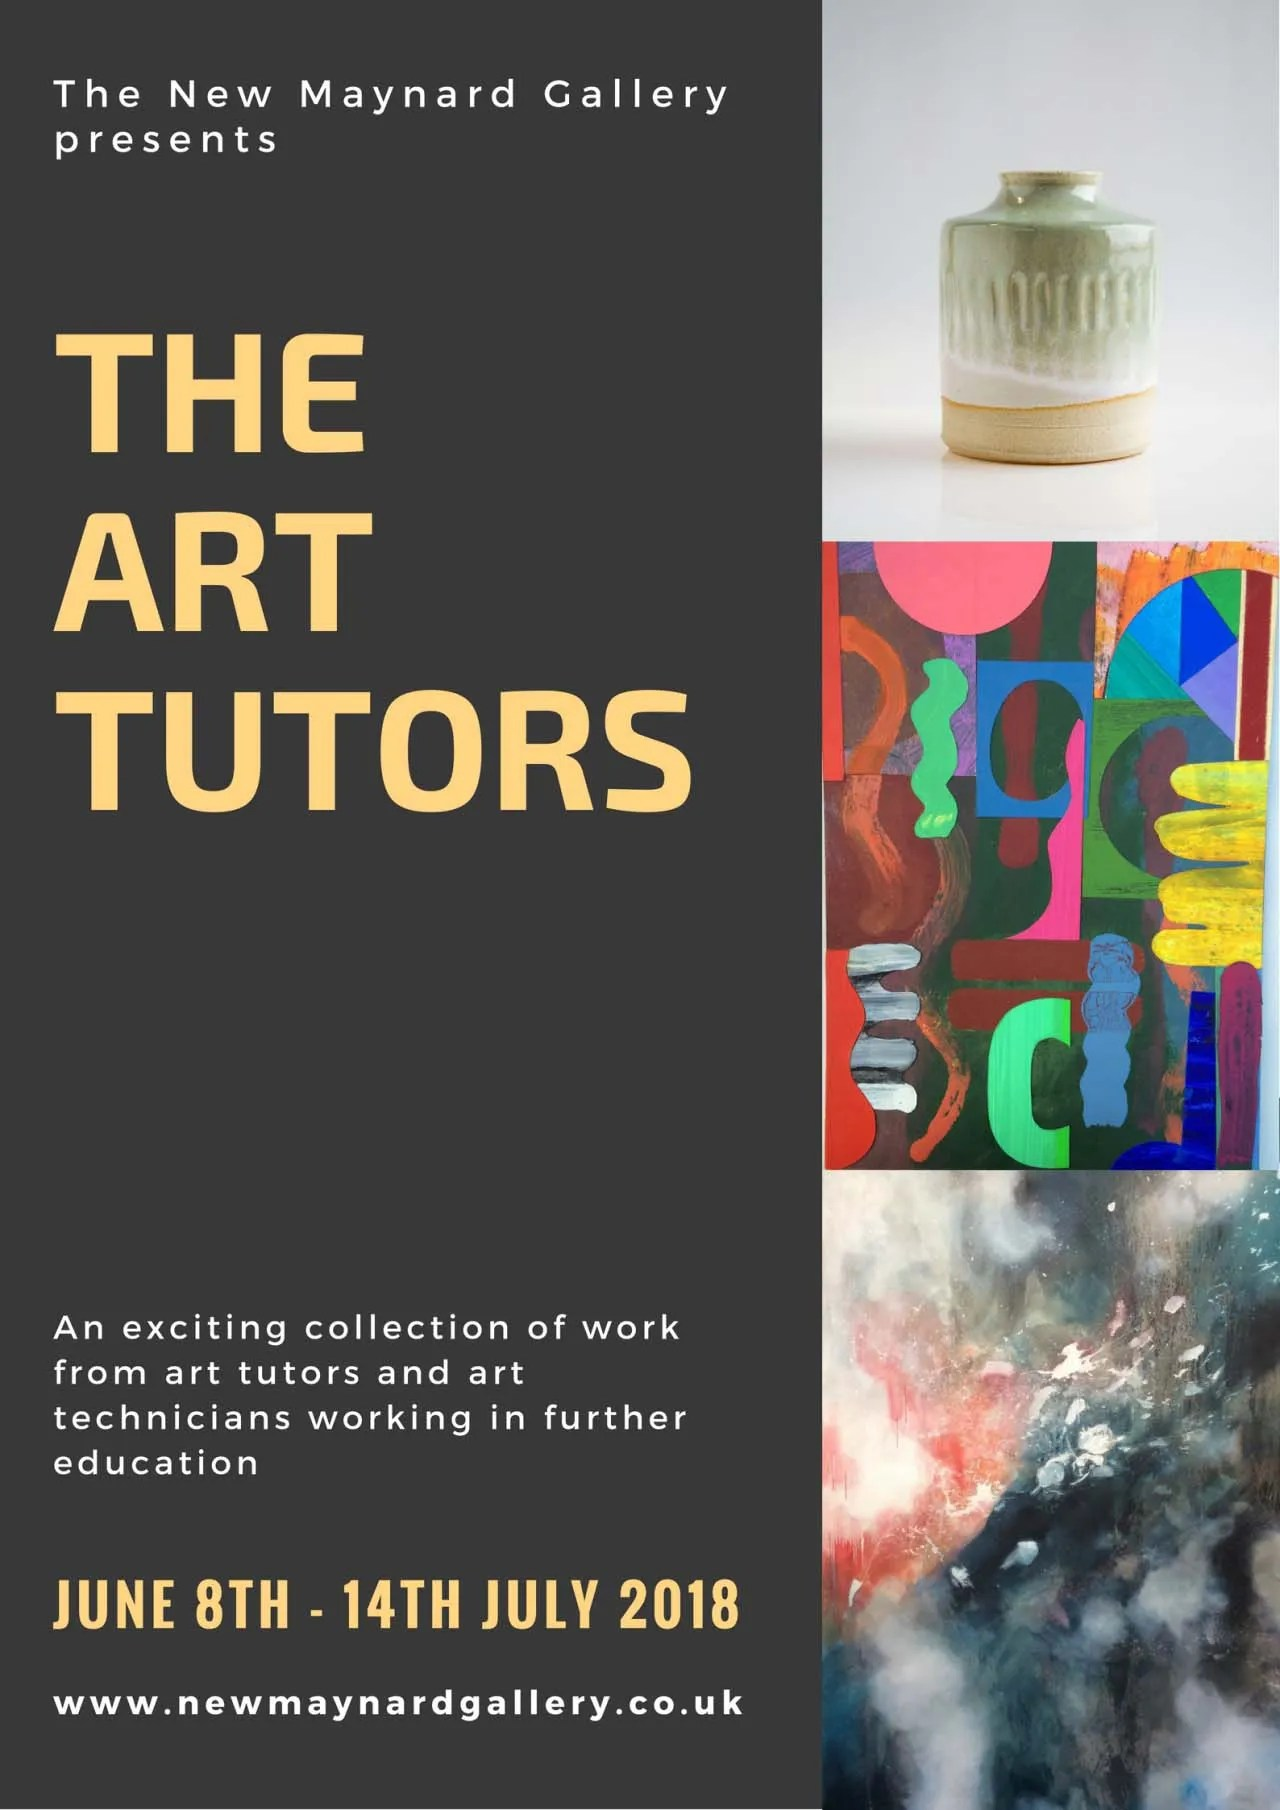 Stuart Jones exhibits with The Art Tutors Group at The New Maynard Gallery